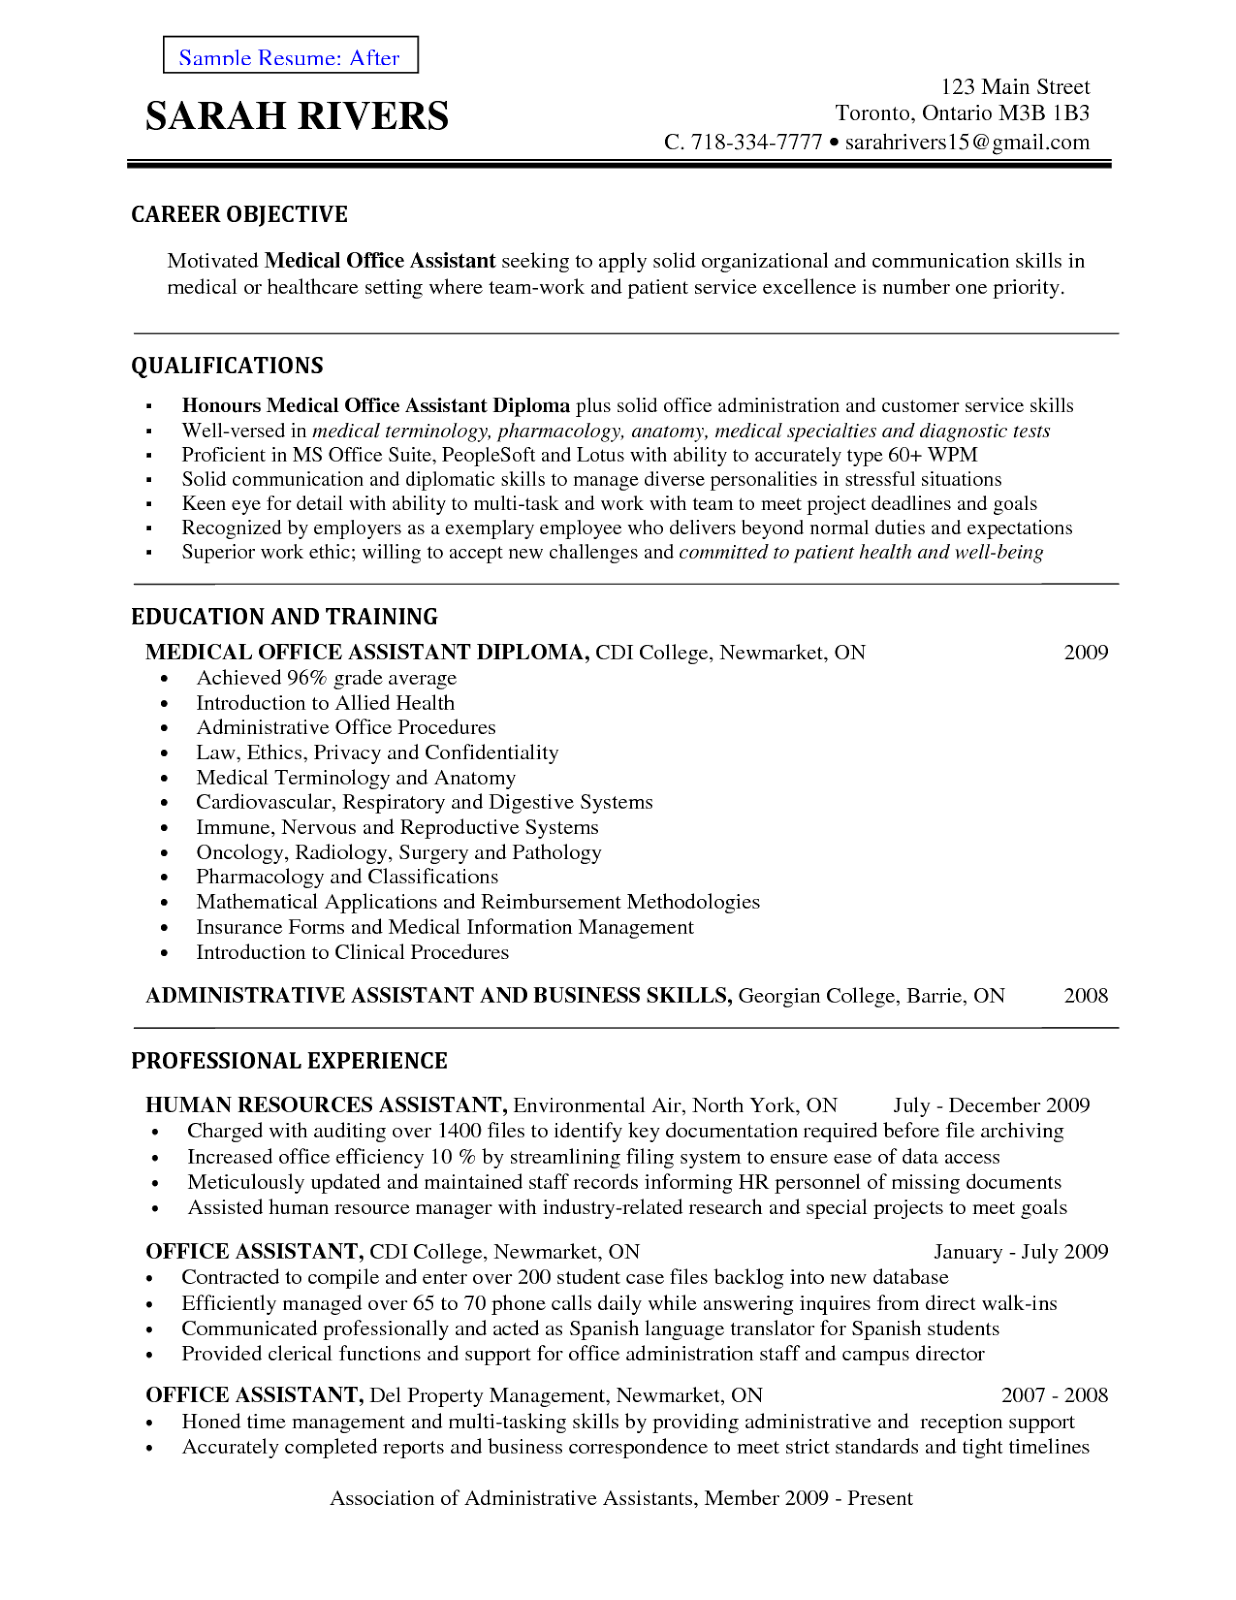 Welding Resume Examples fabrication engineer cover letter Professional  Welder resume samples u Eager World welding resume